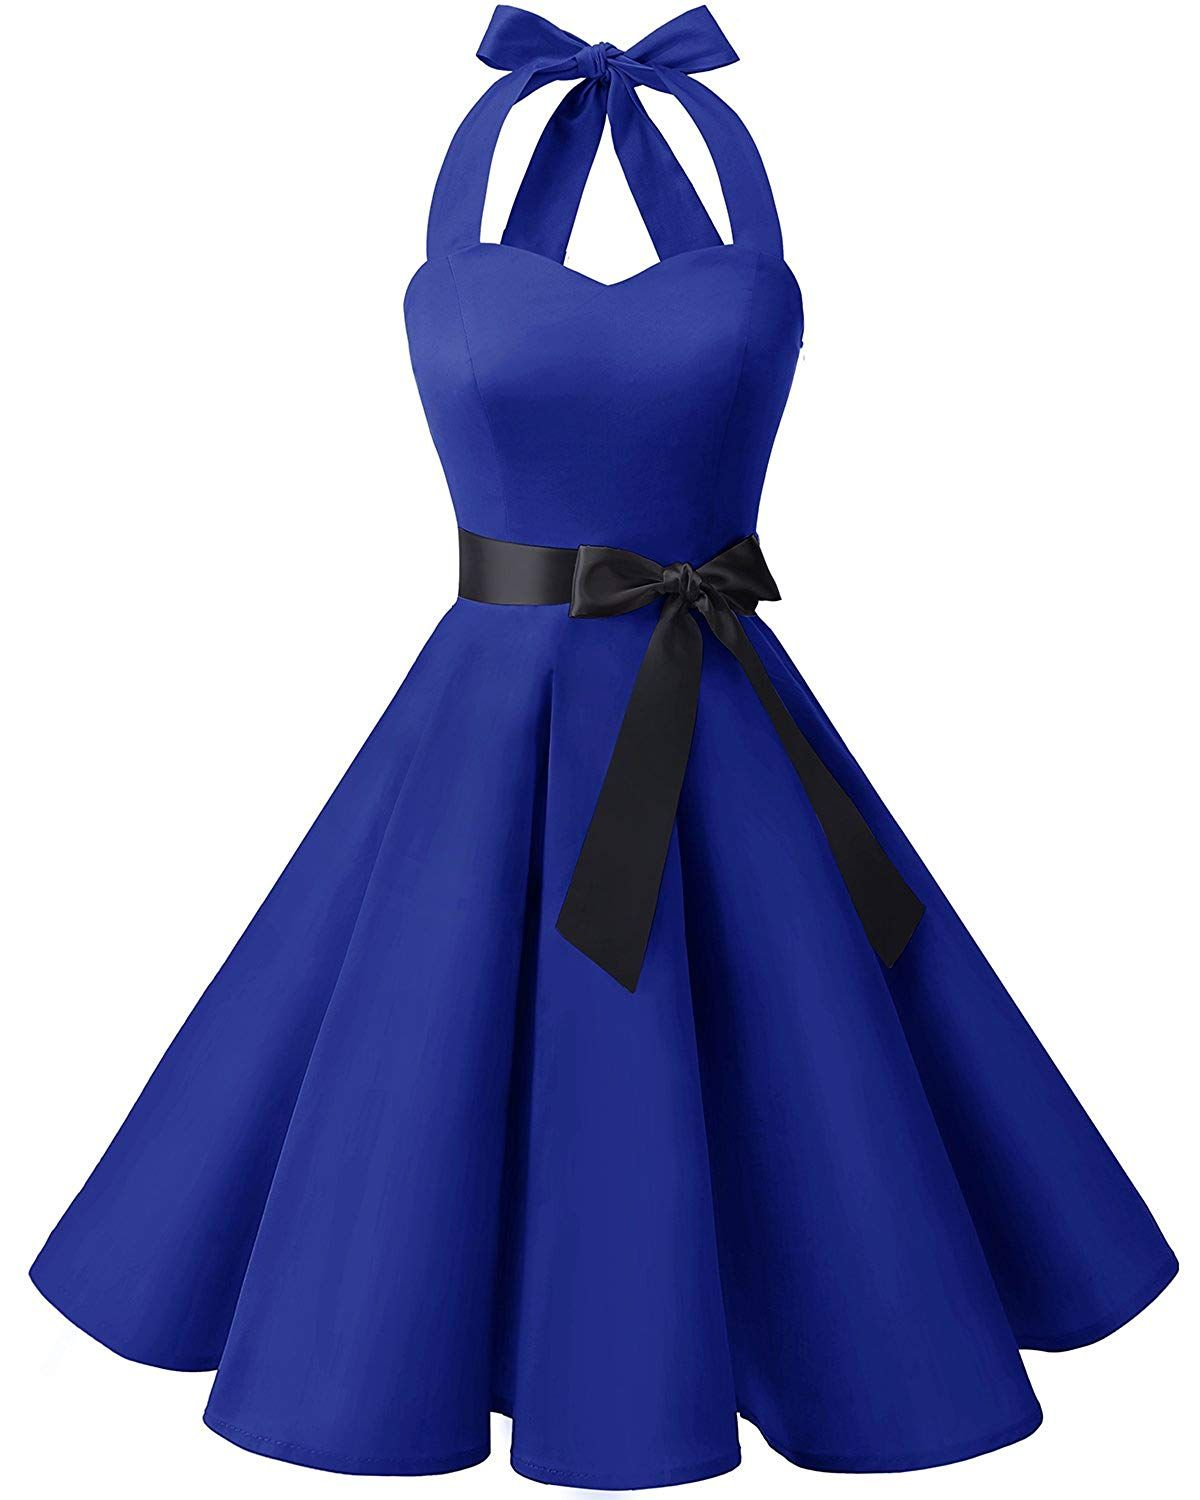 386f3b40bd9e Amazon.com: Bridesmay Women 50's Vintage Rockabilly Halter Swing Cocktail Party  Dress Royal Blue 3XL: Clothing